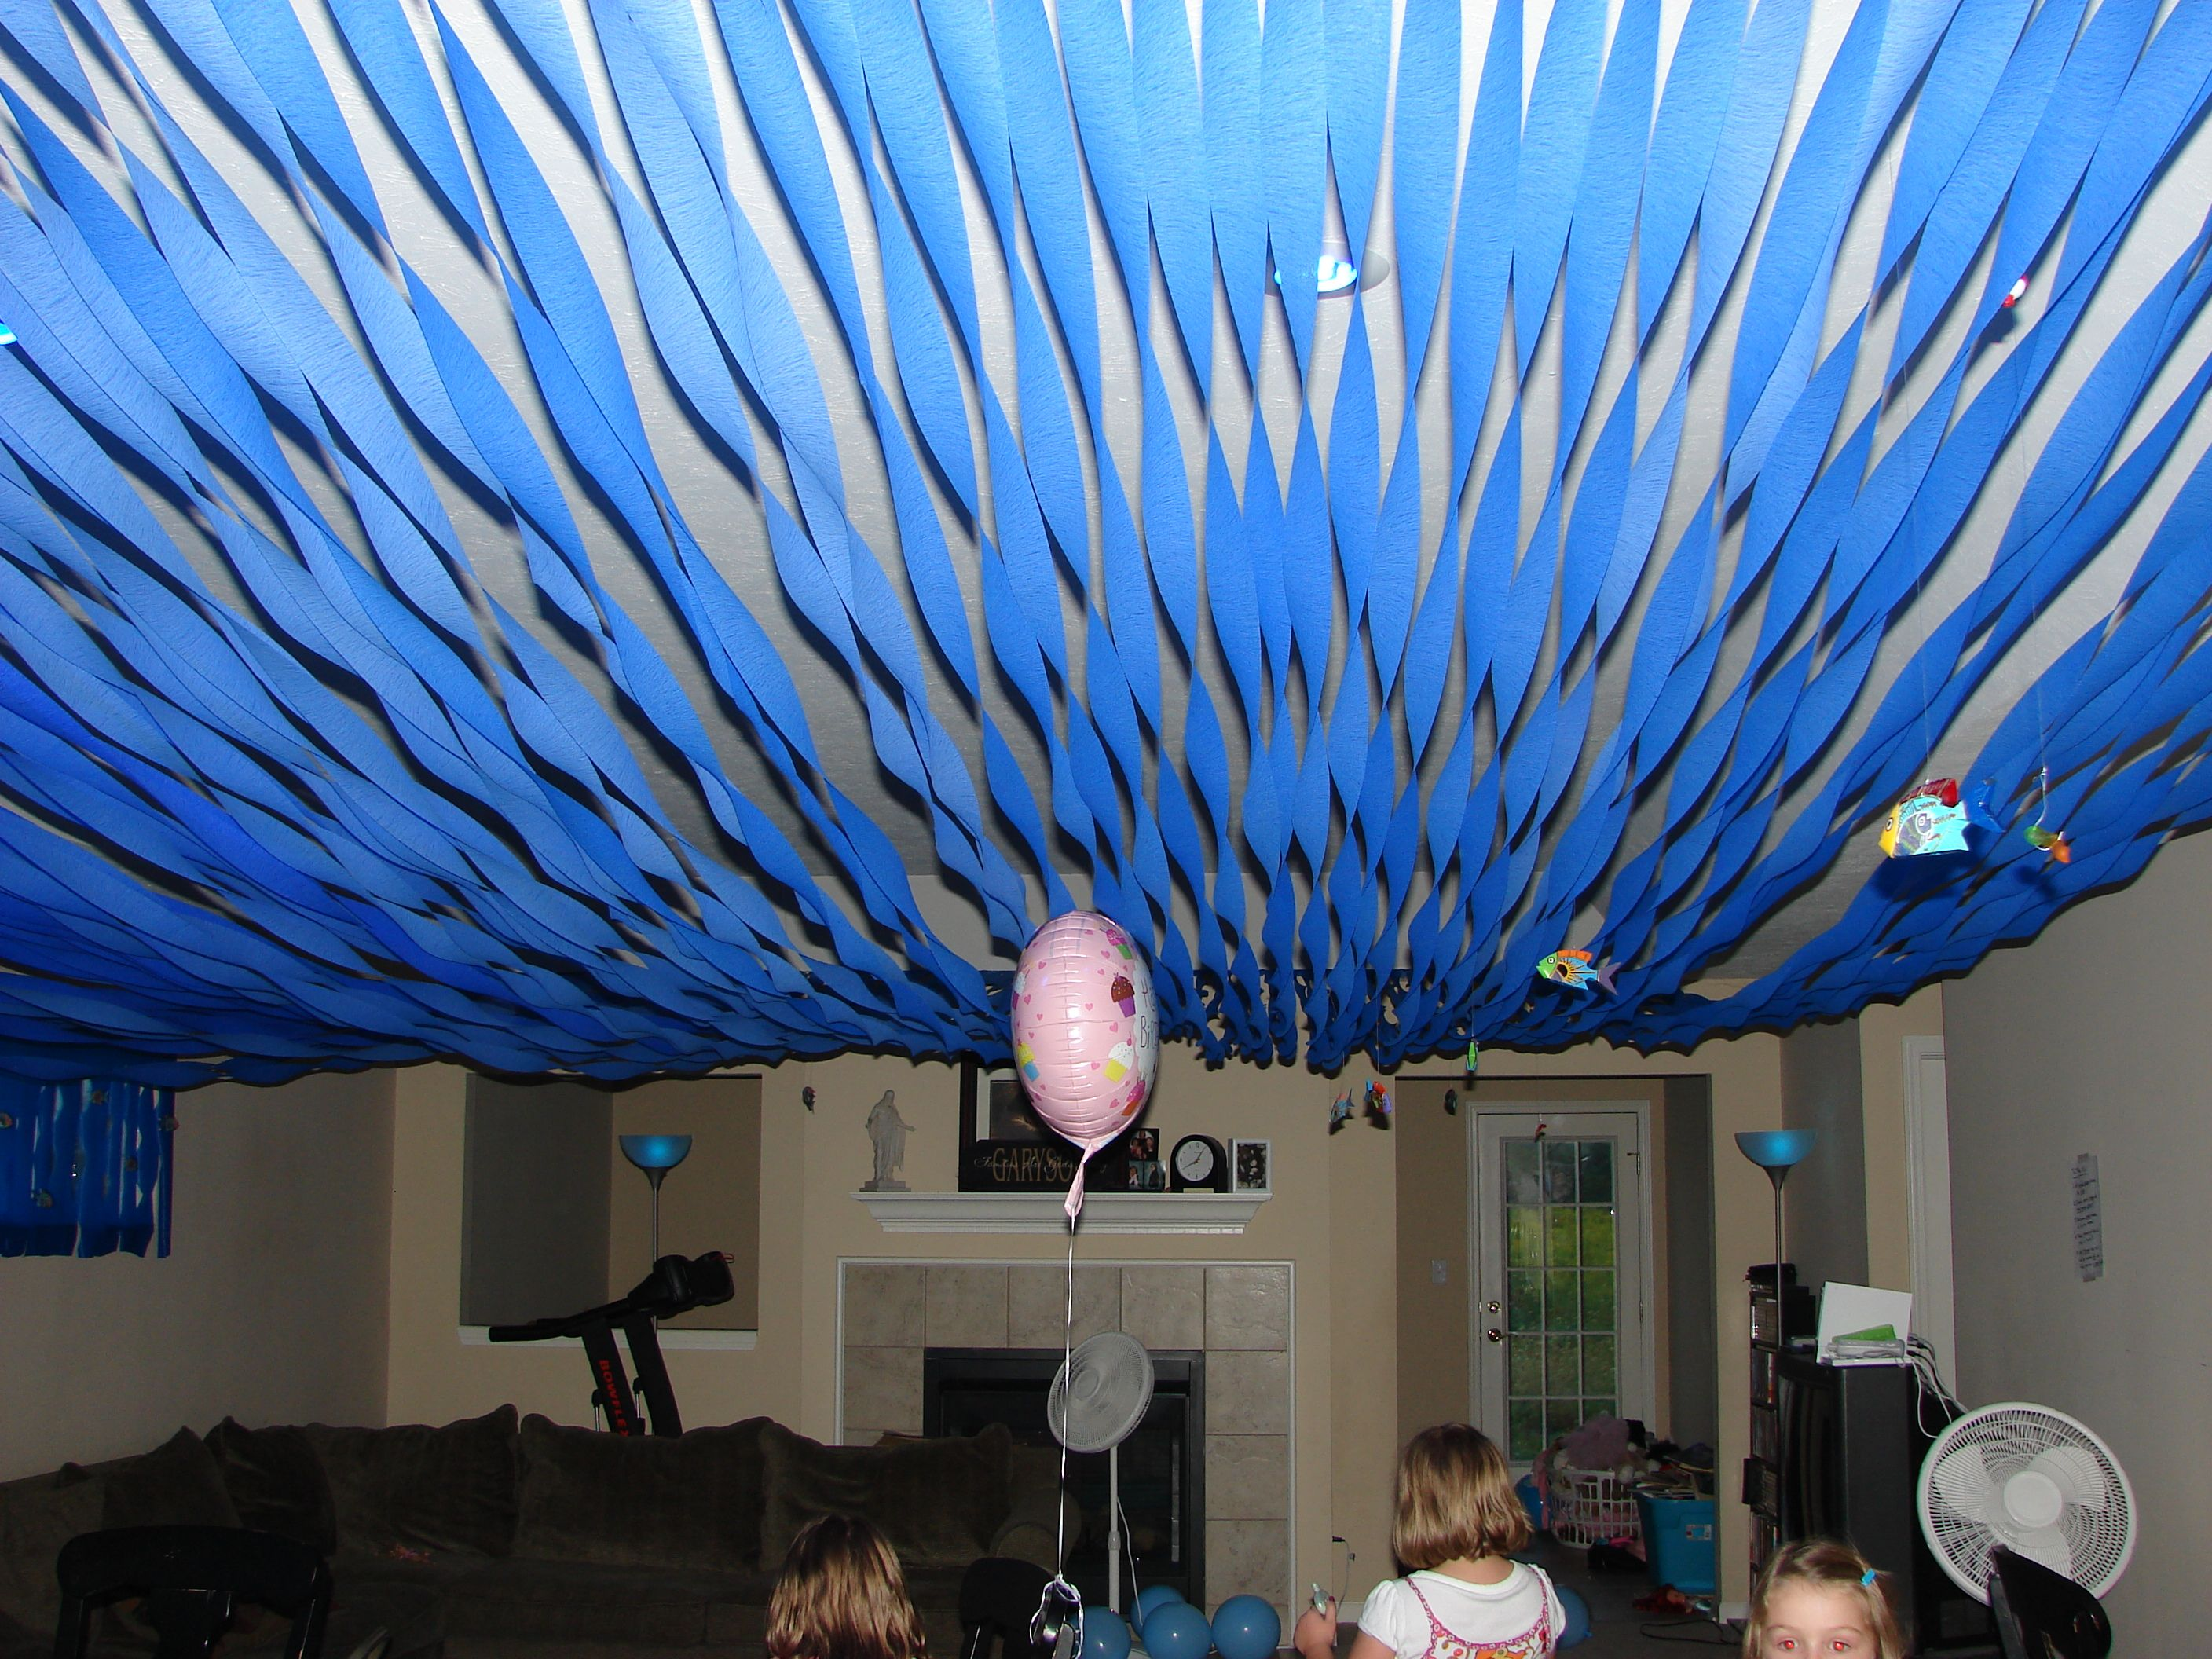 Decorating Classroom Ocean Theme ~ Under the sea decorations this would be so cool to do